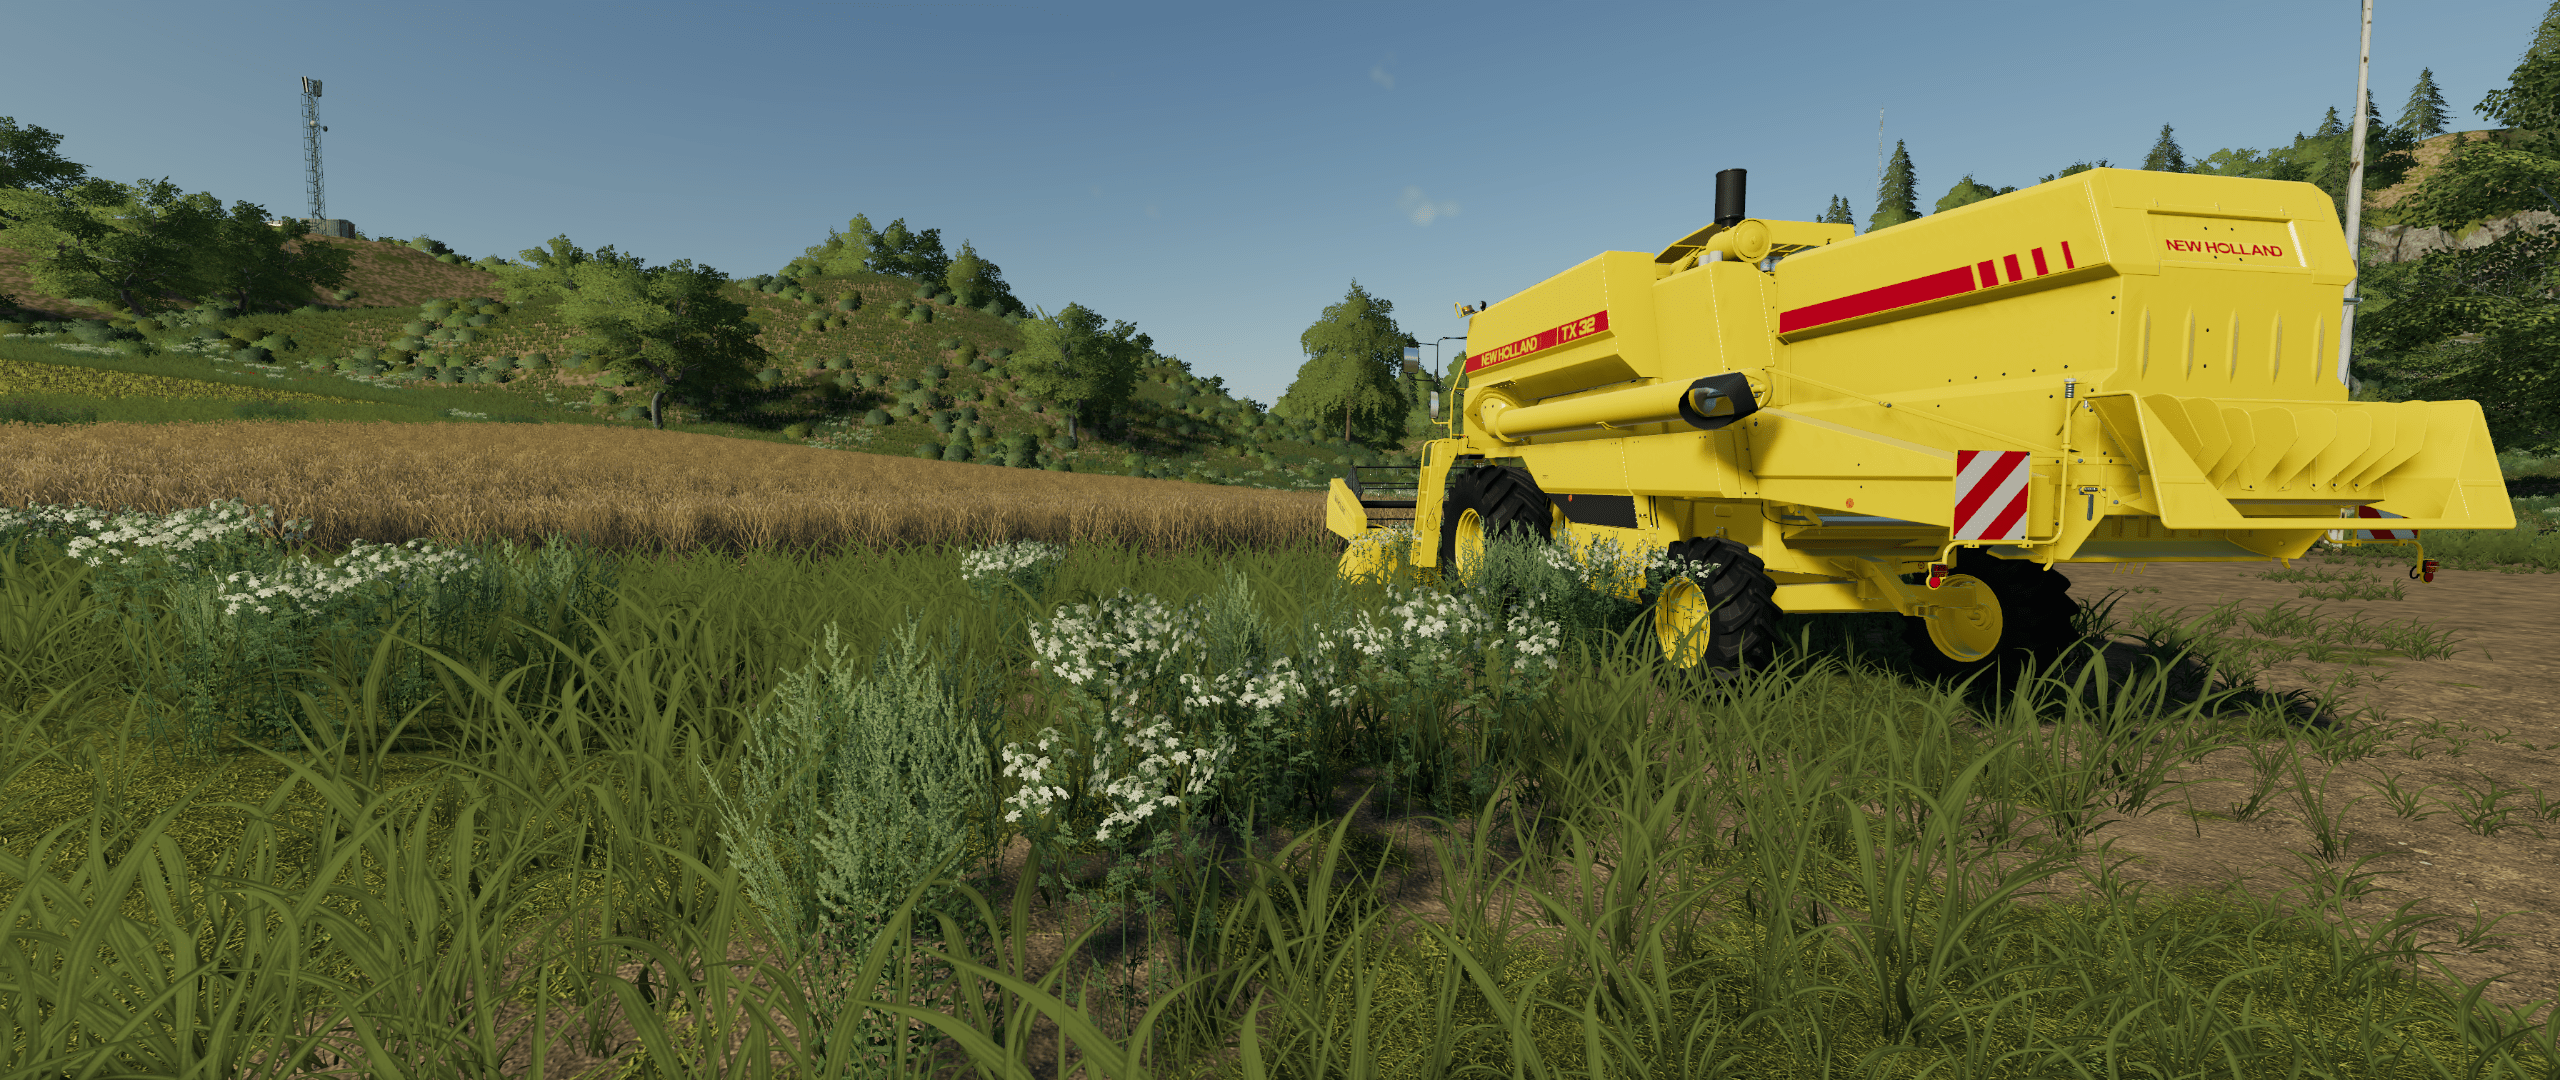 Reshade 4 0 2 Better Colors & Realism by animatiV FS19